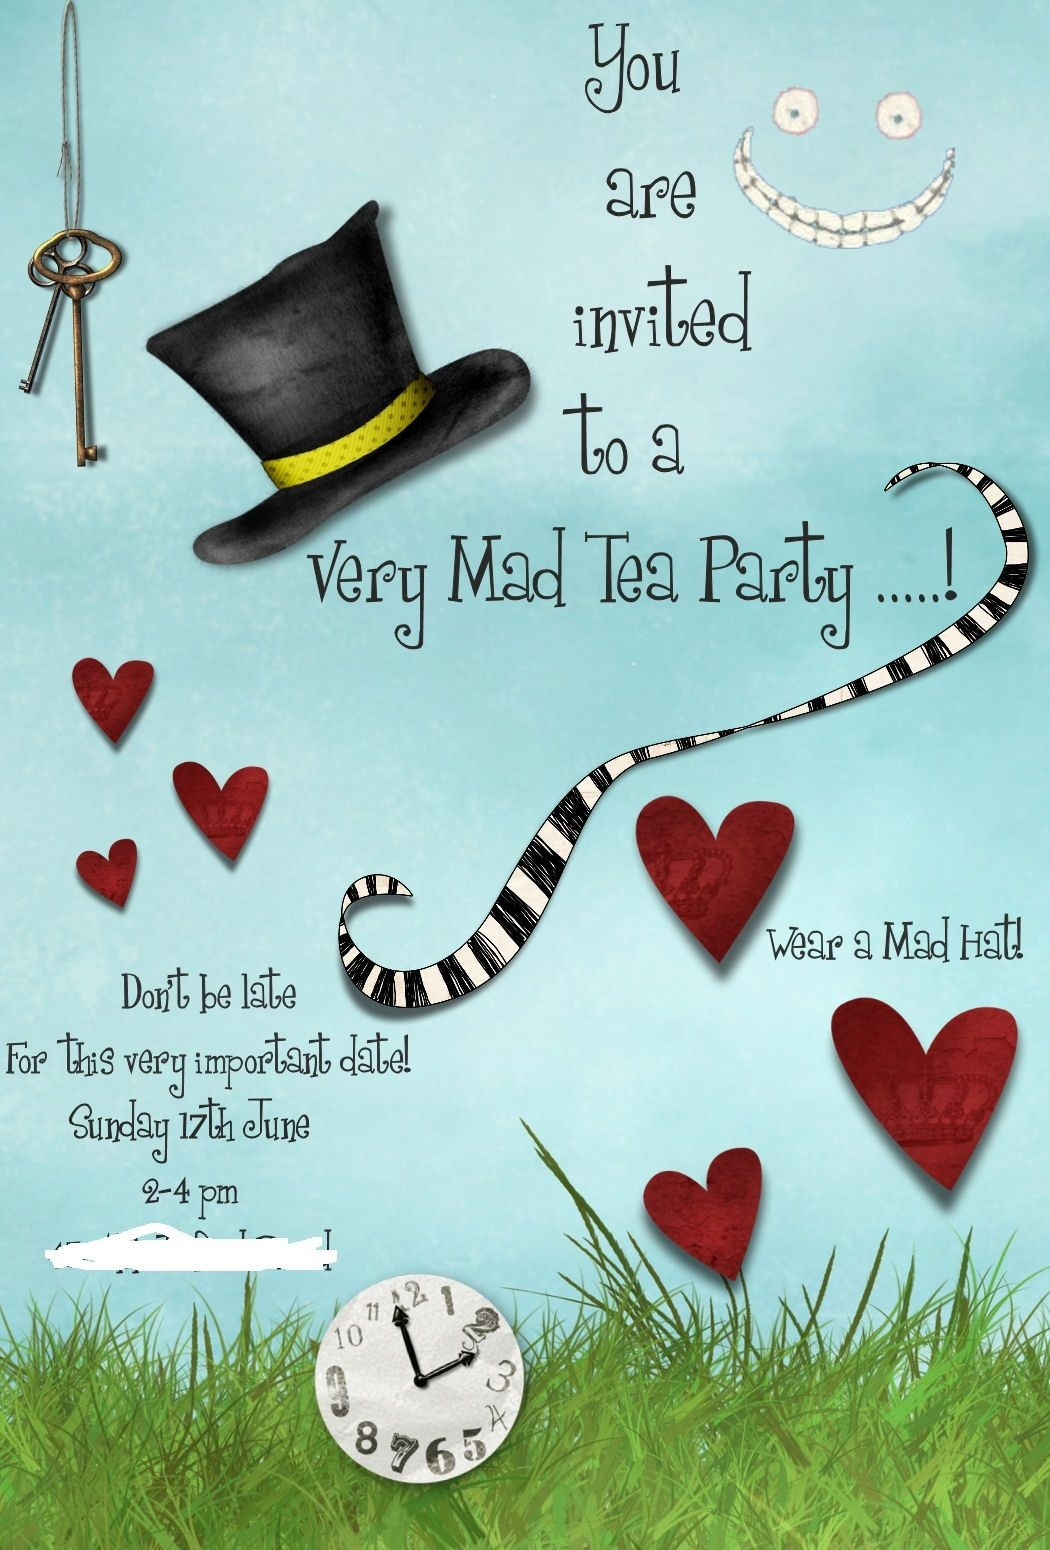 Mad Hatters Tea Party Invitation Template Free | Tea Party In 2019 - Mad Hatter Tea Party Invitations Free Printable